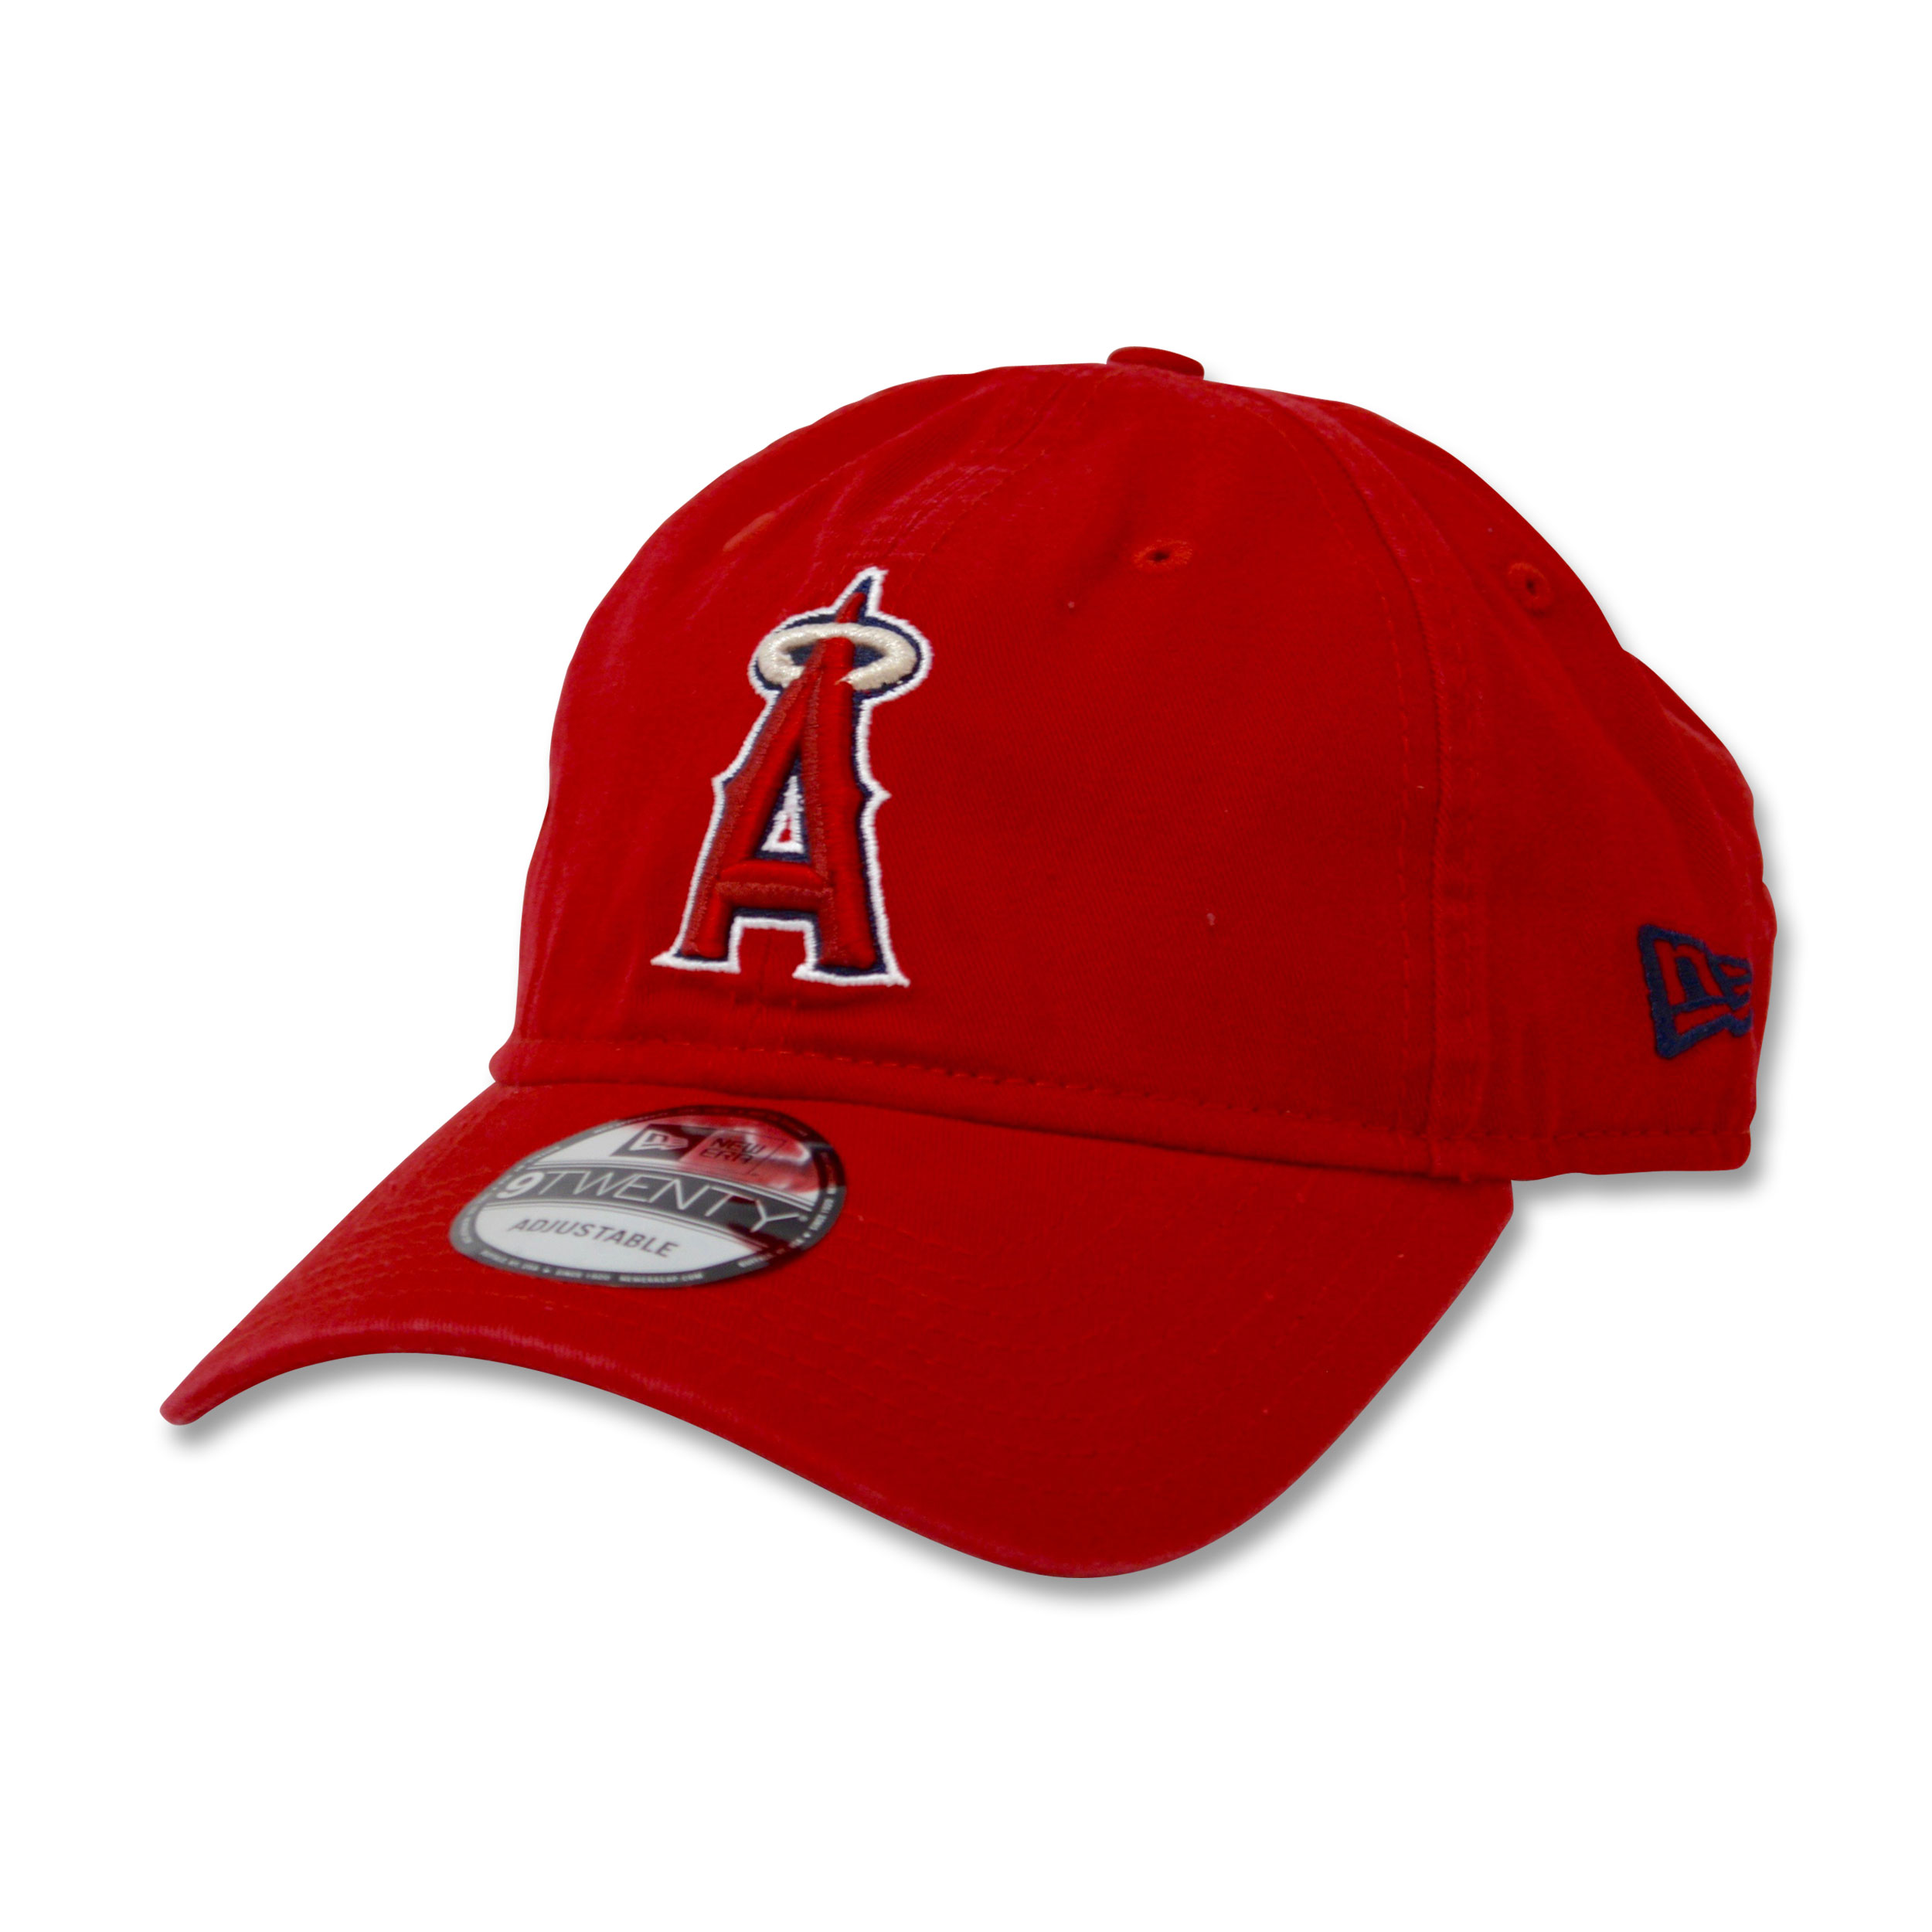 ANGELS MLB NEWERA BASEBALLCAP